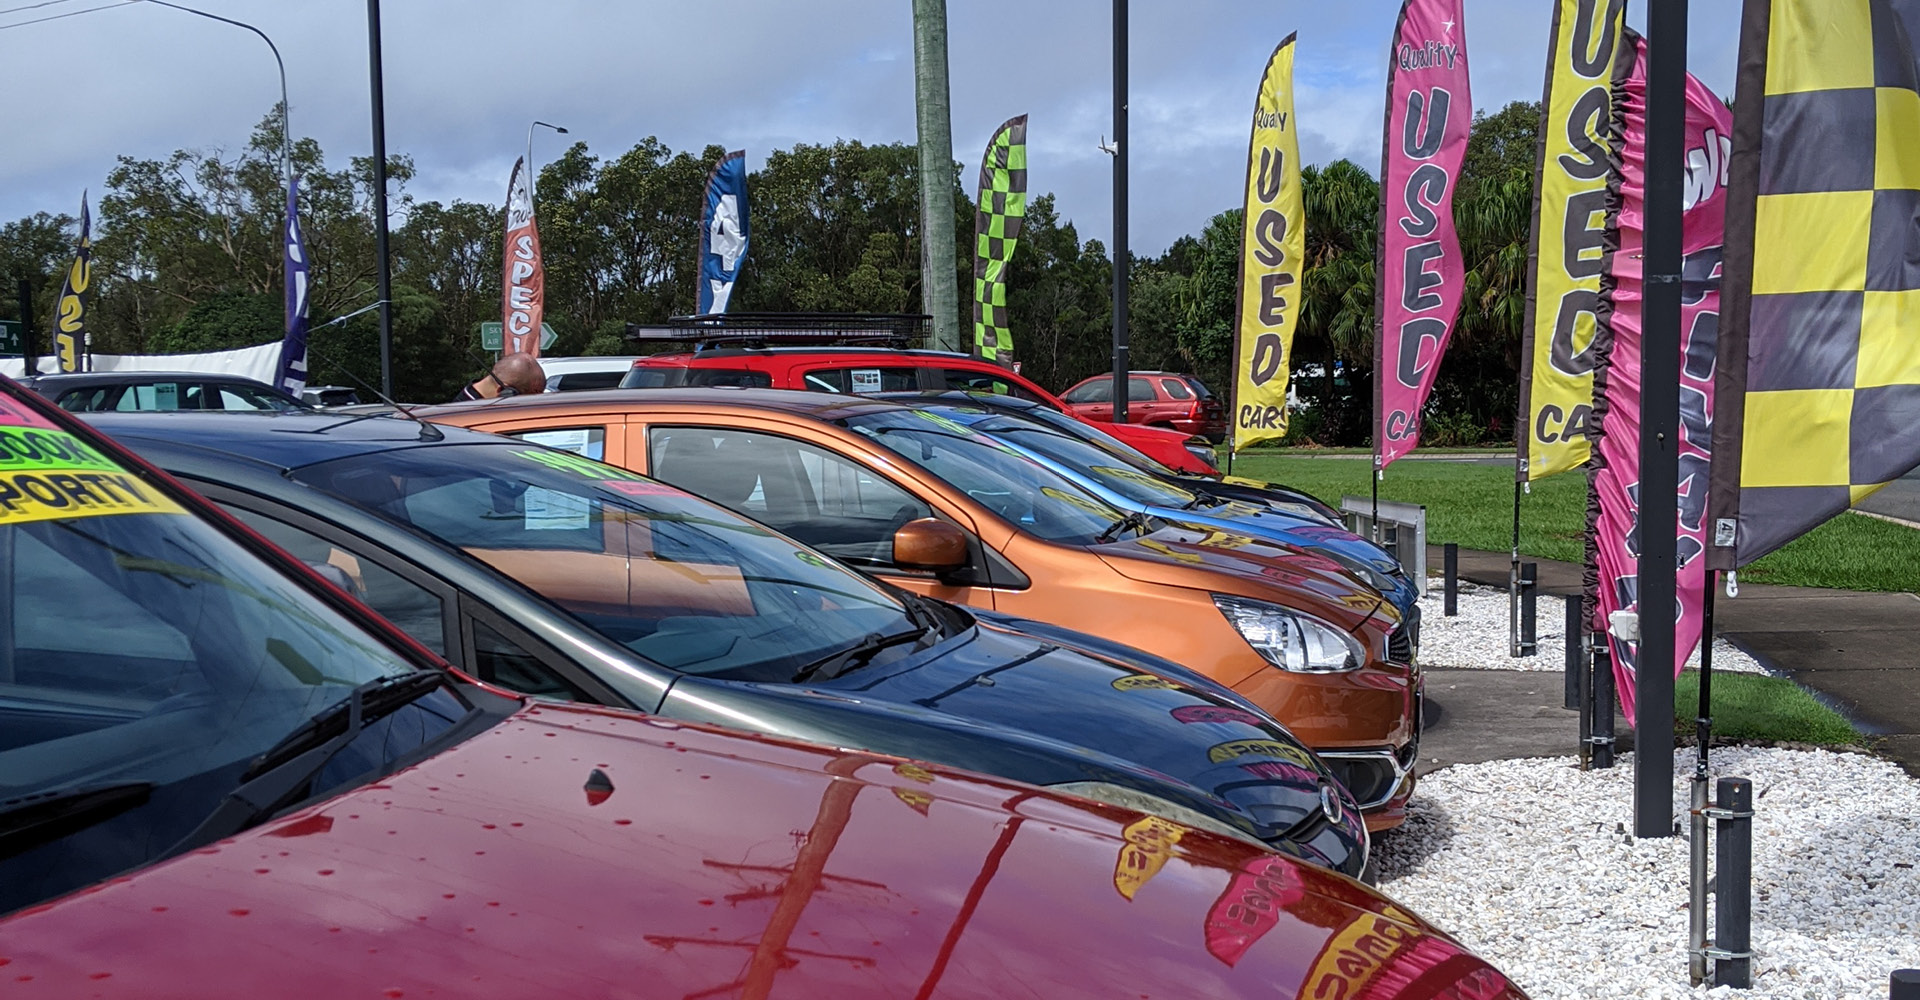 Get $500 to spend when you buy a used car in August!